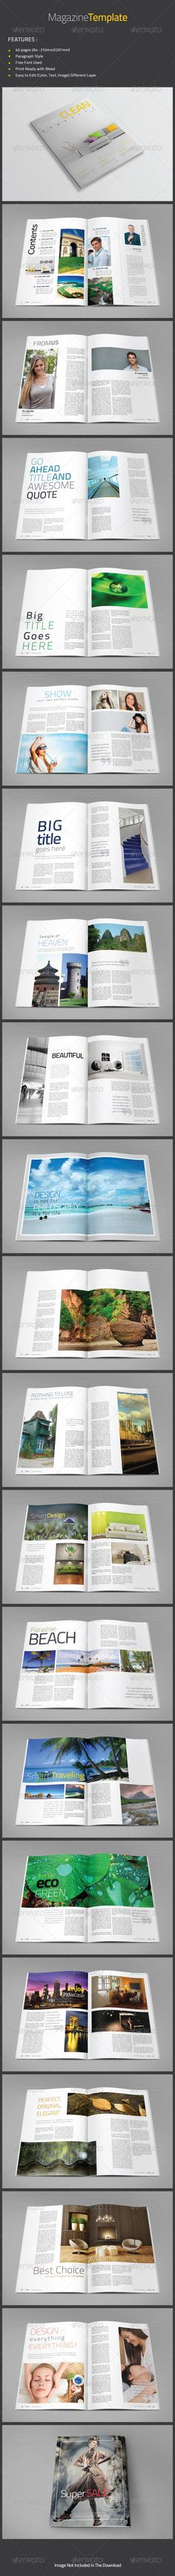 Smart Clean Magazine Template — InDesign INDD #magazine #clean • Available here → https://graphicriver.net/item/smart-clean-magazine-template/4661478?ref=pxcr